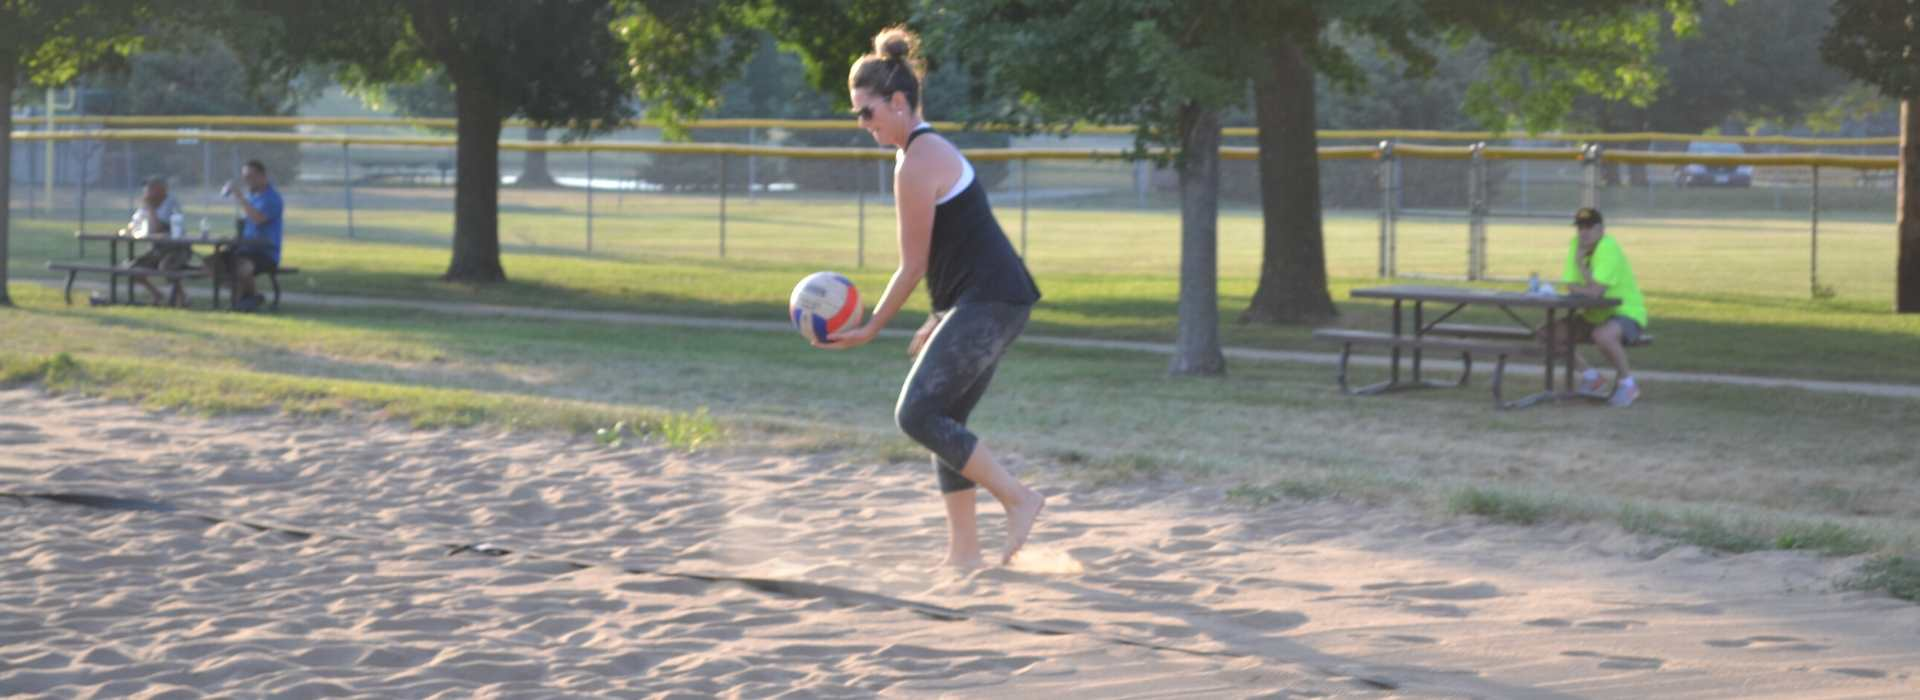 sand volleyball woman serving